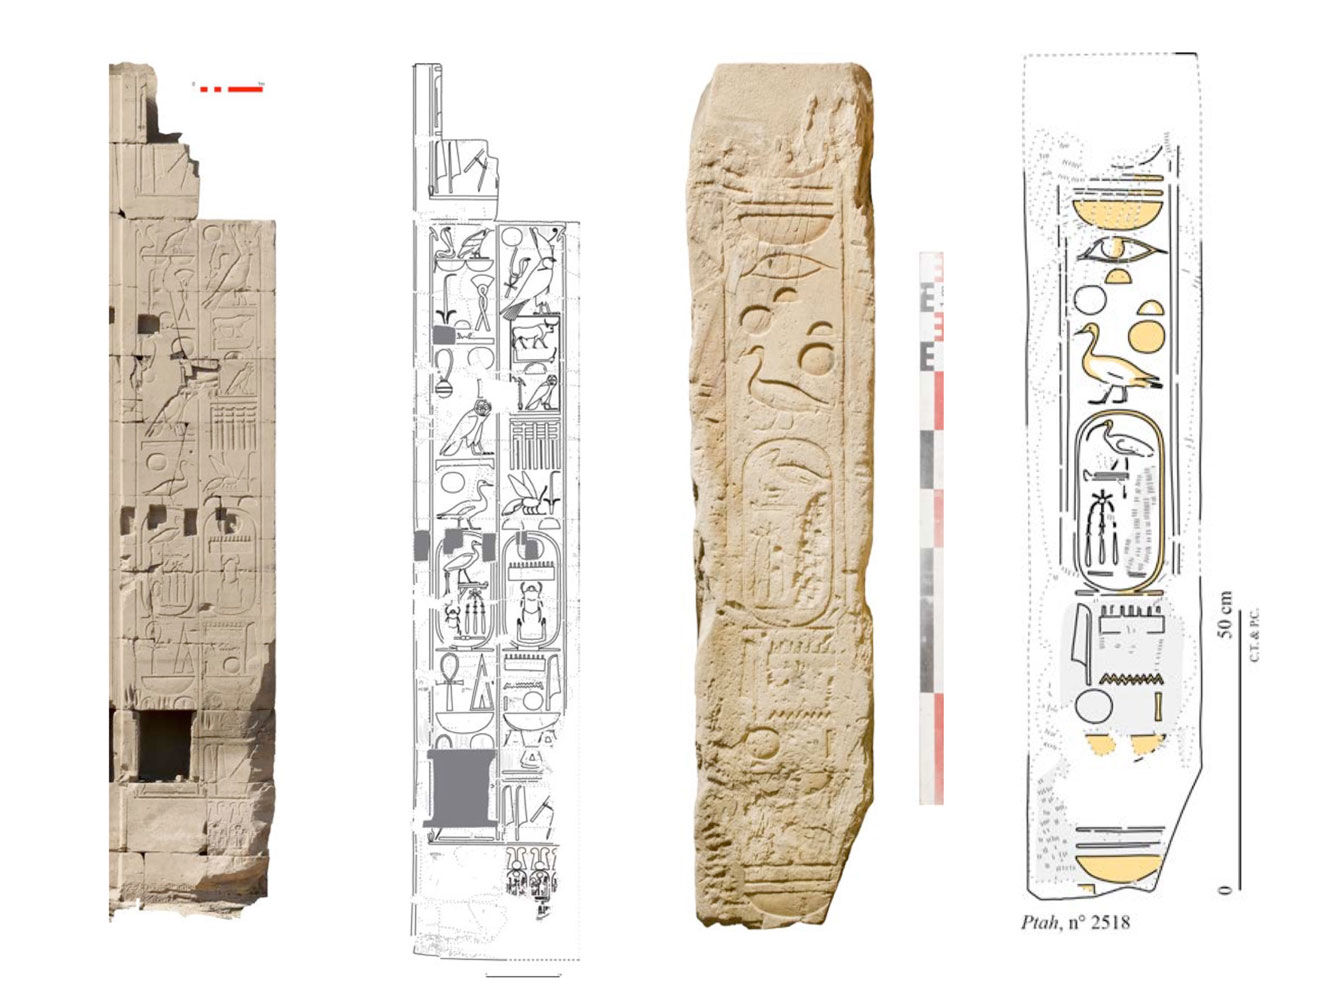 Damage treatment variants in epigraphic documentation